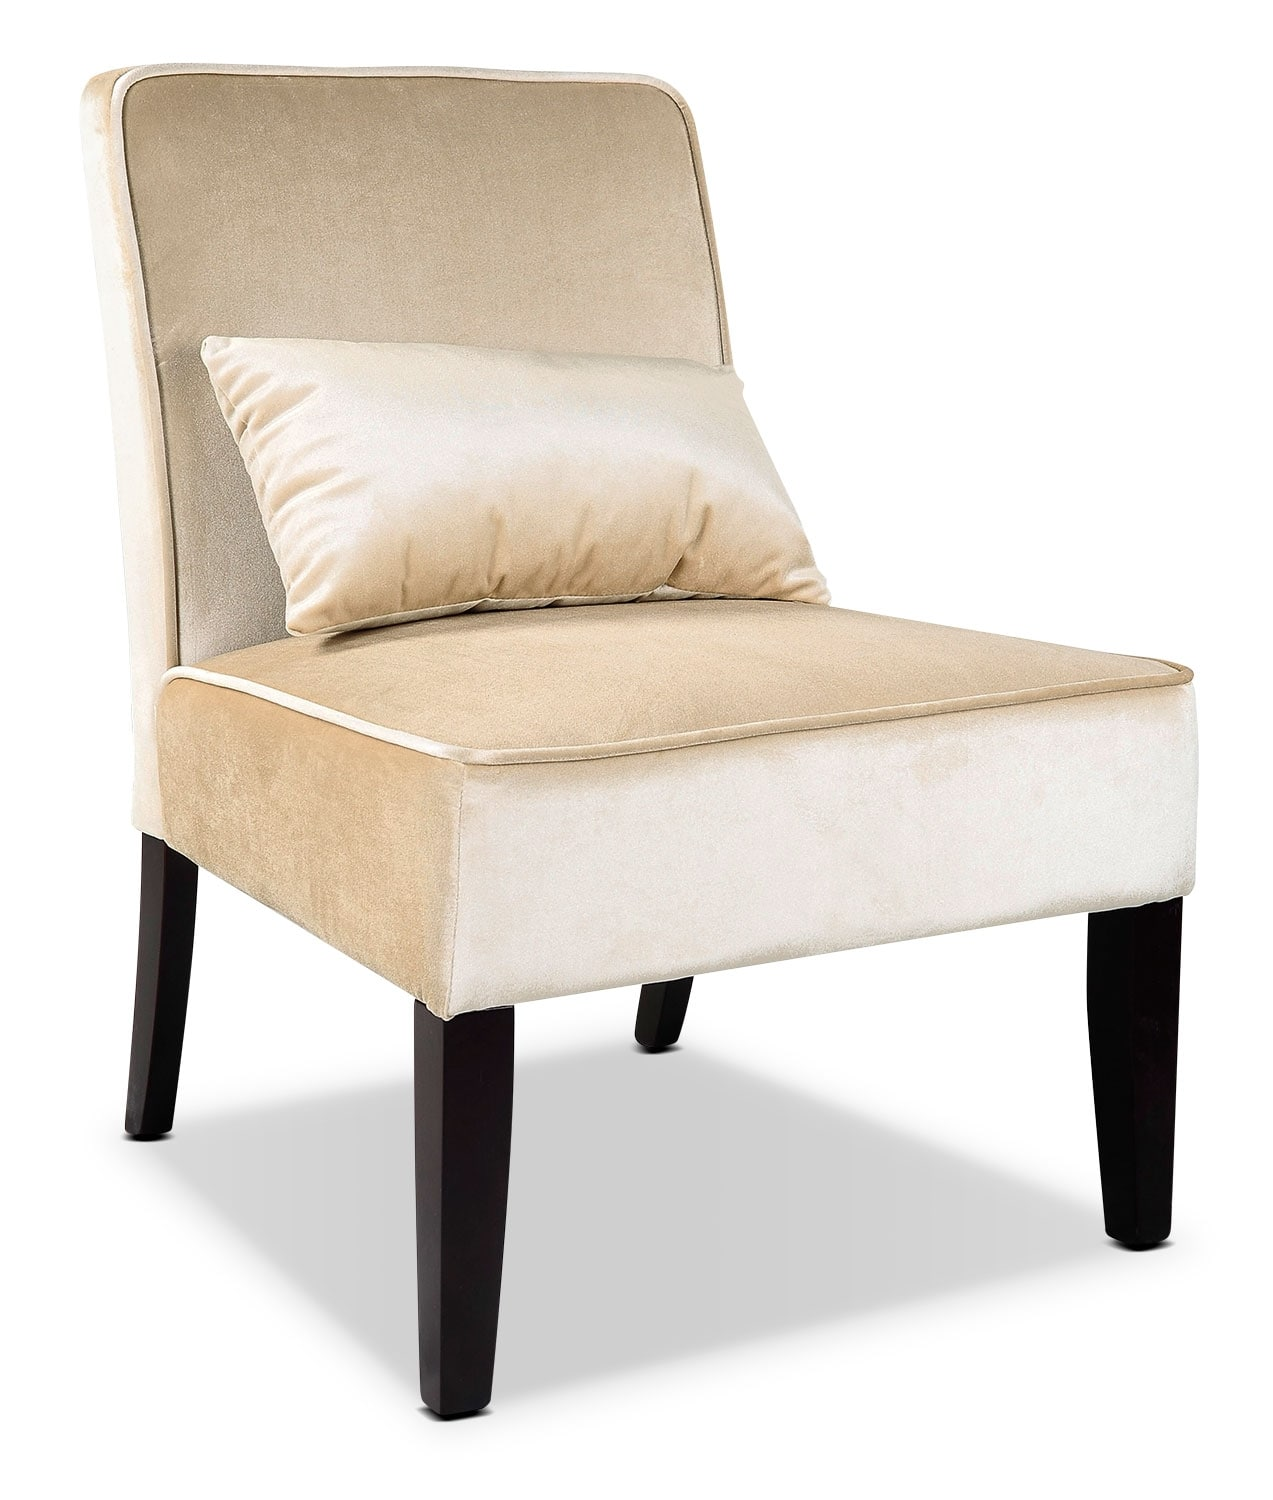 LAD Velvet Fabric Accent Chair with Accent Cushion – Cream